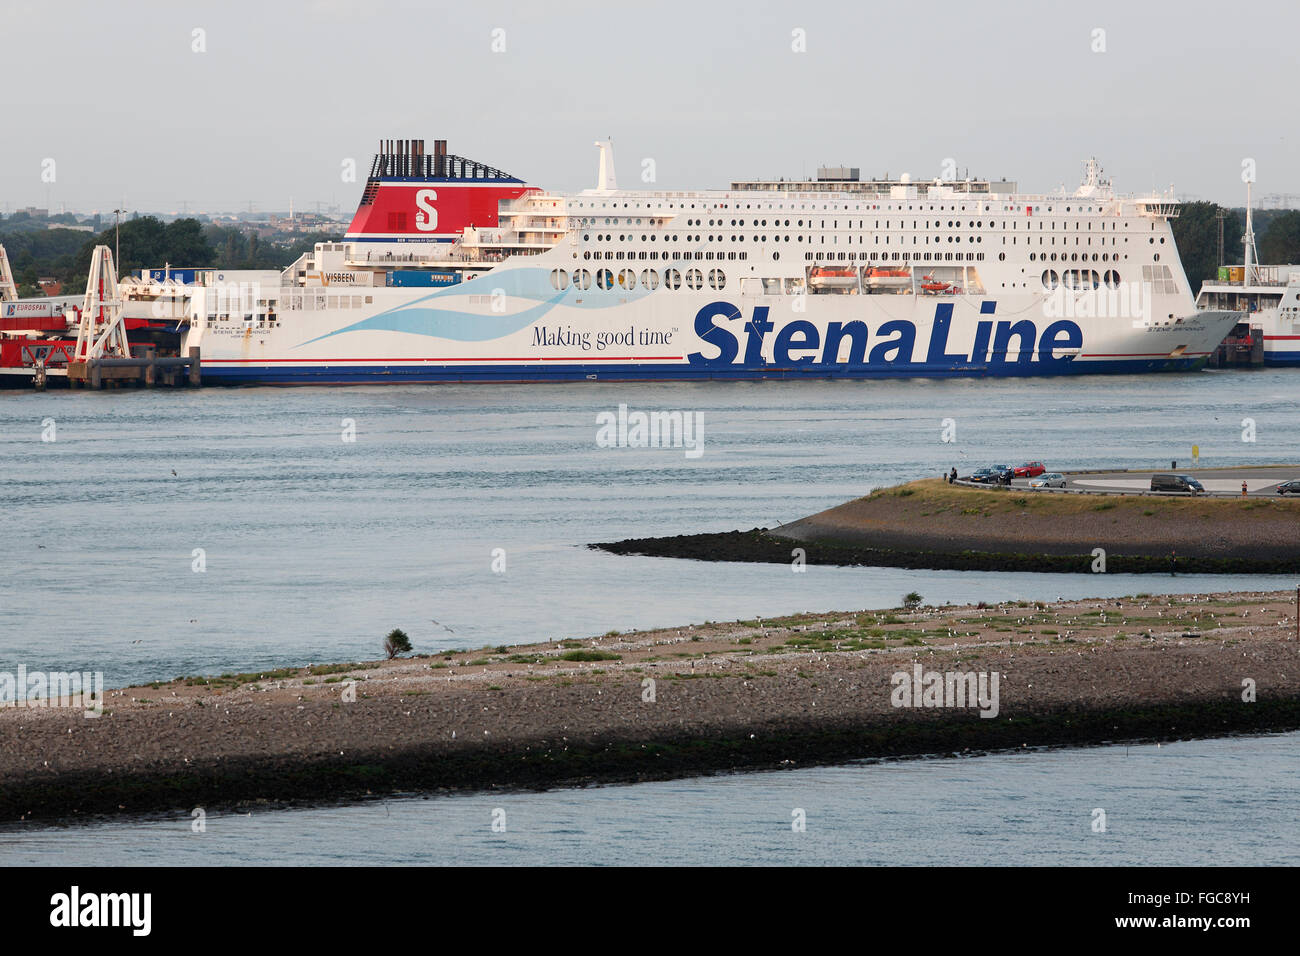 Stena Line passenger ship in the harbour of Rotterdam - Stock Image